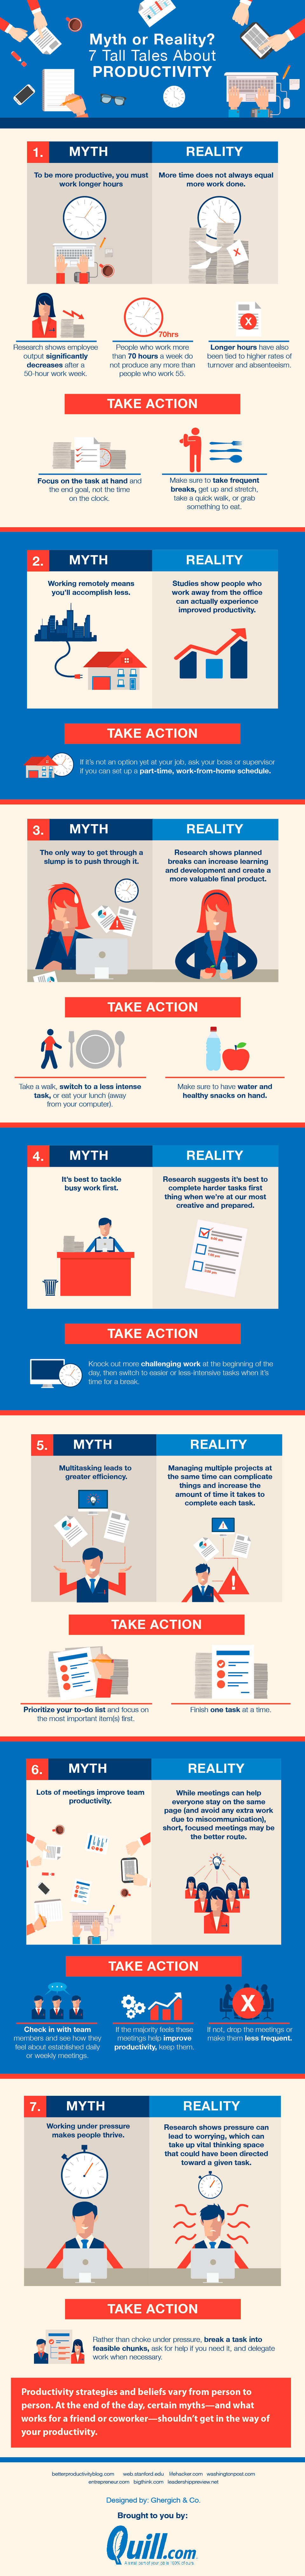 productivity-myths-and-reality